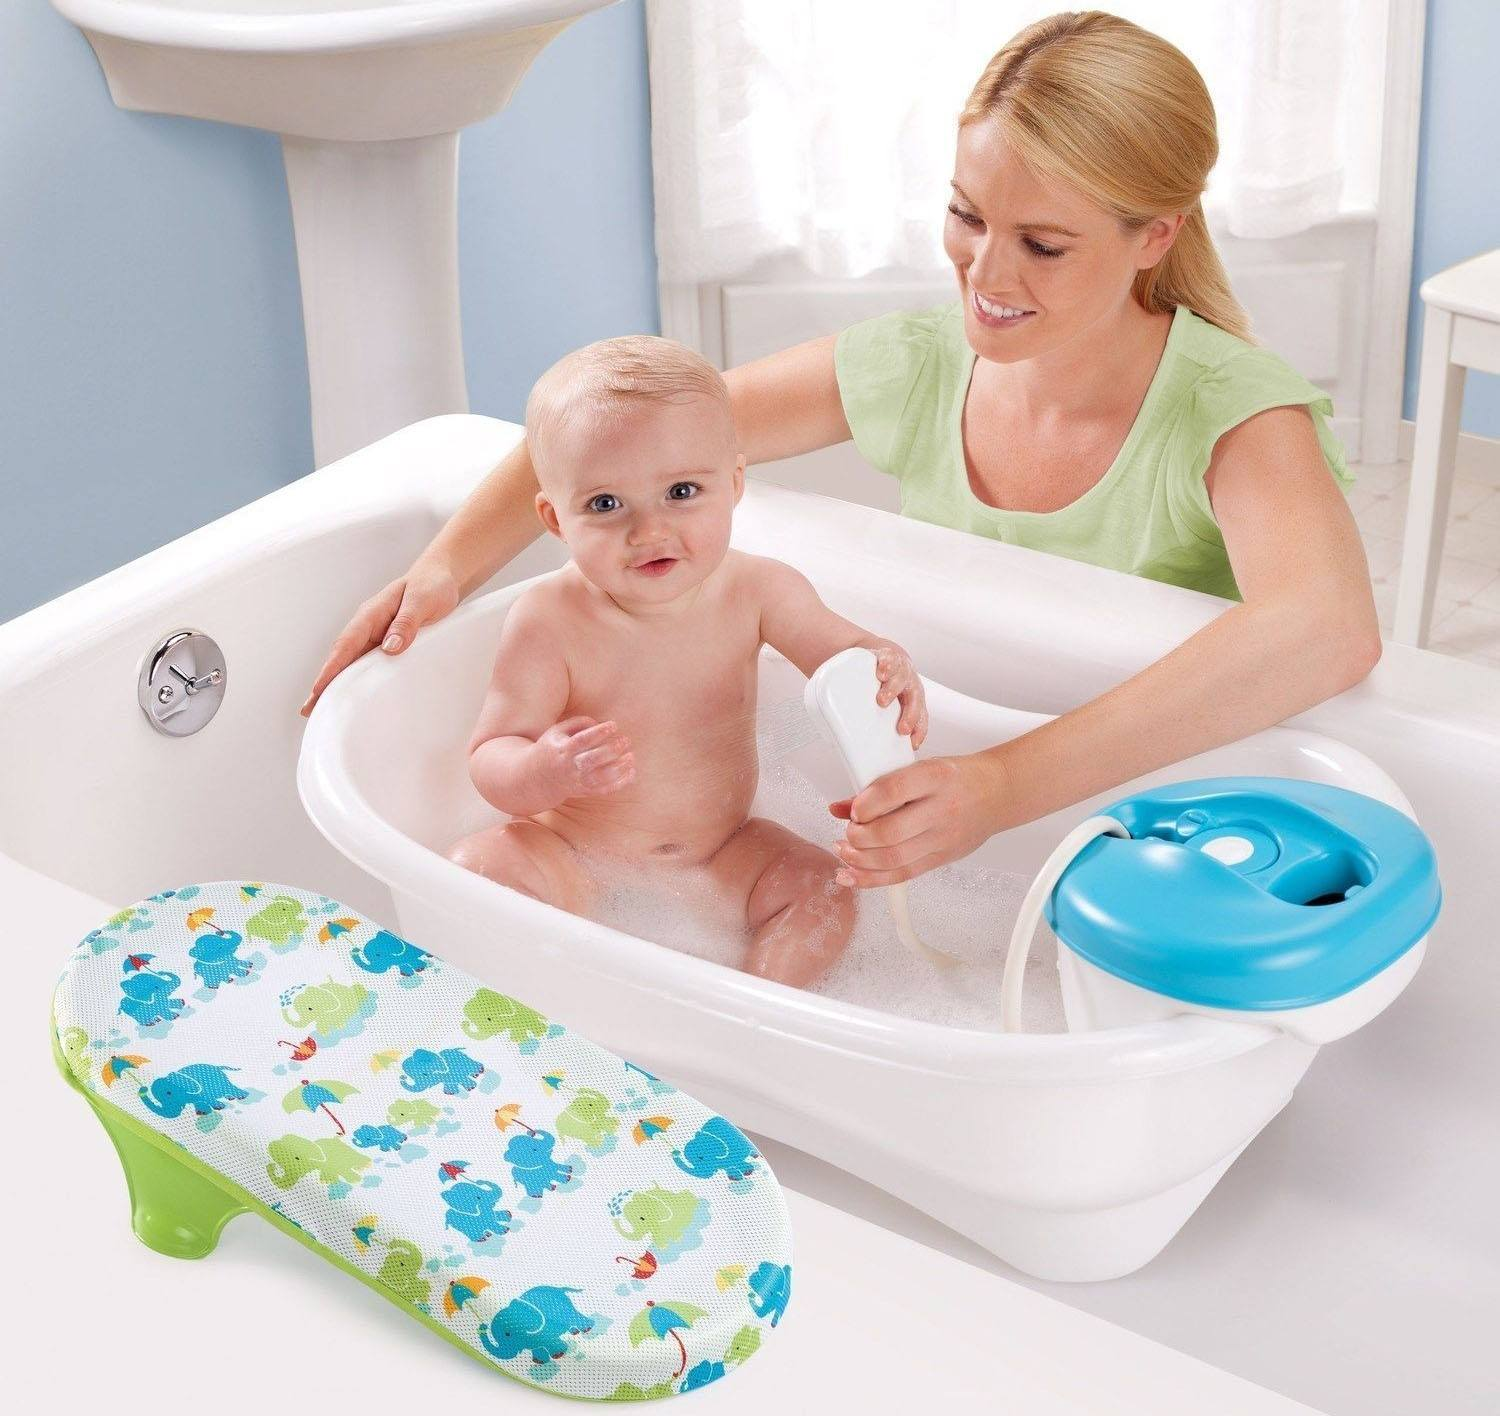 7 Tips For Bathing A Baby - The Impressive Kids